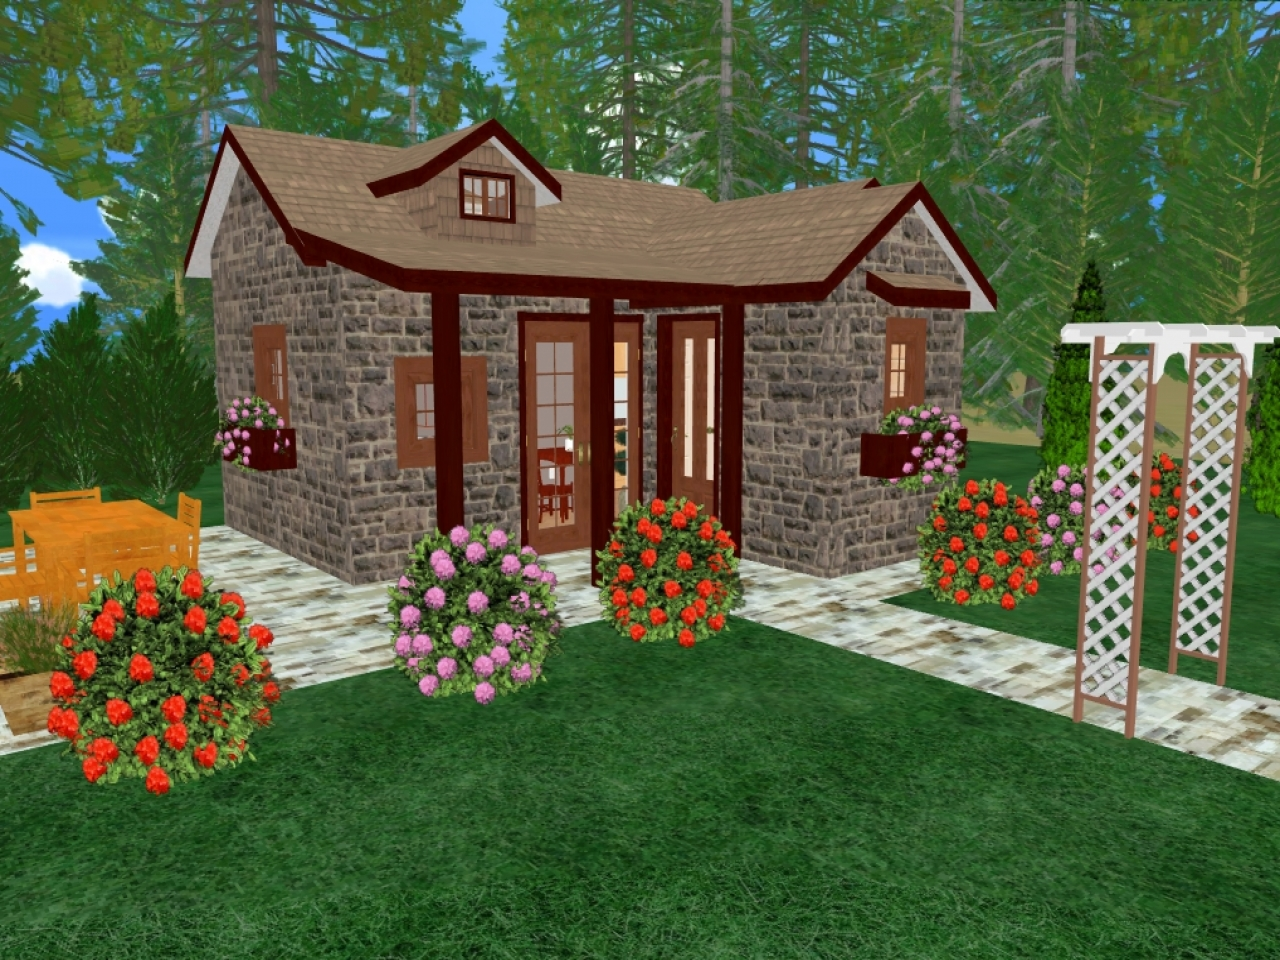 Tiny House Floor Plans Small Cabins Tiny Houses Small: Tiny Romantic Cottage House Plan Tiny Romantic Cottage